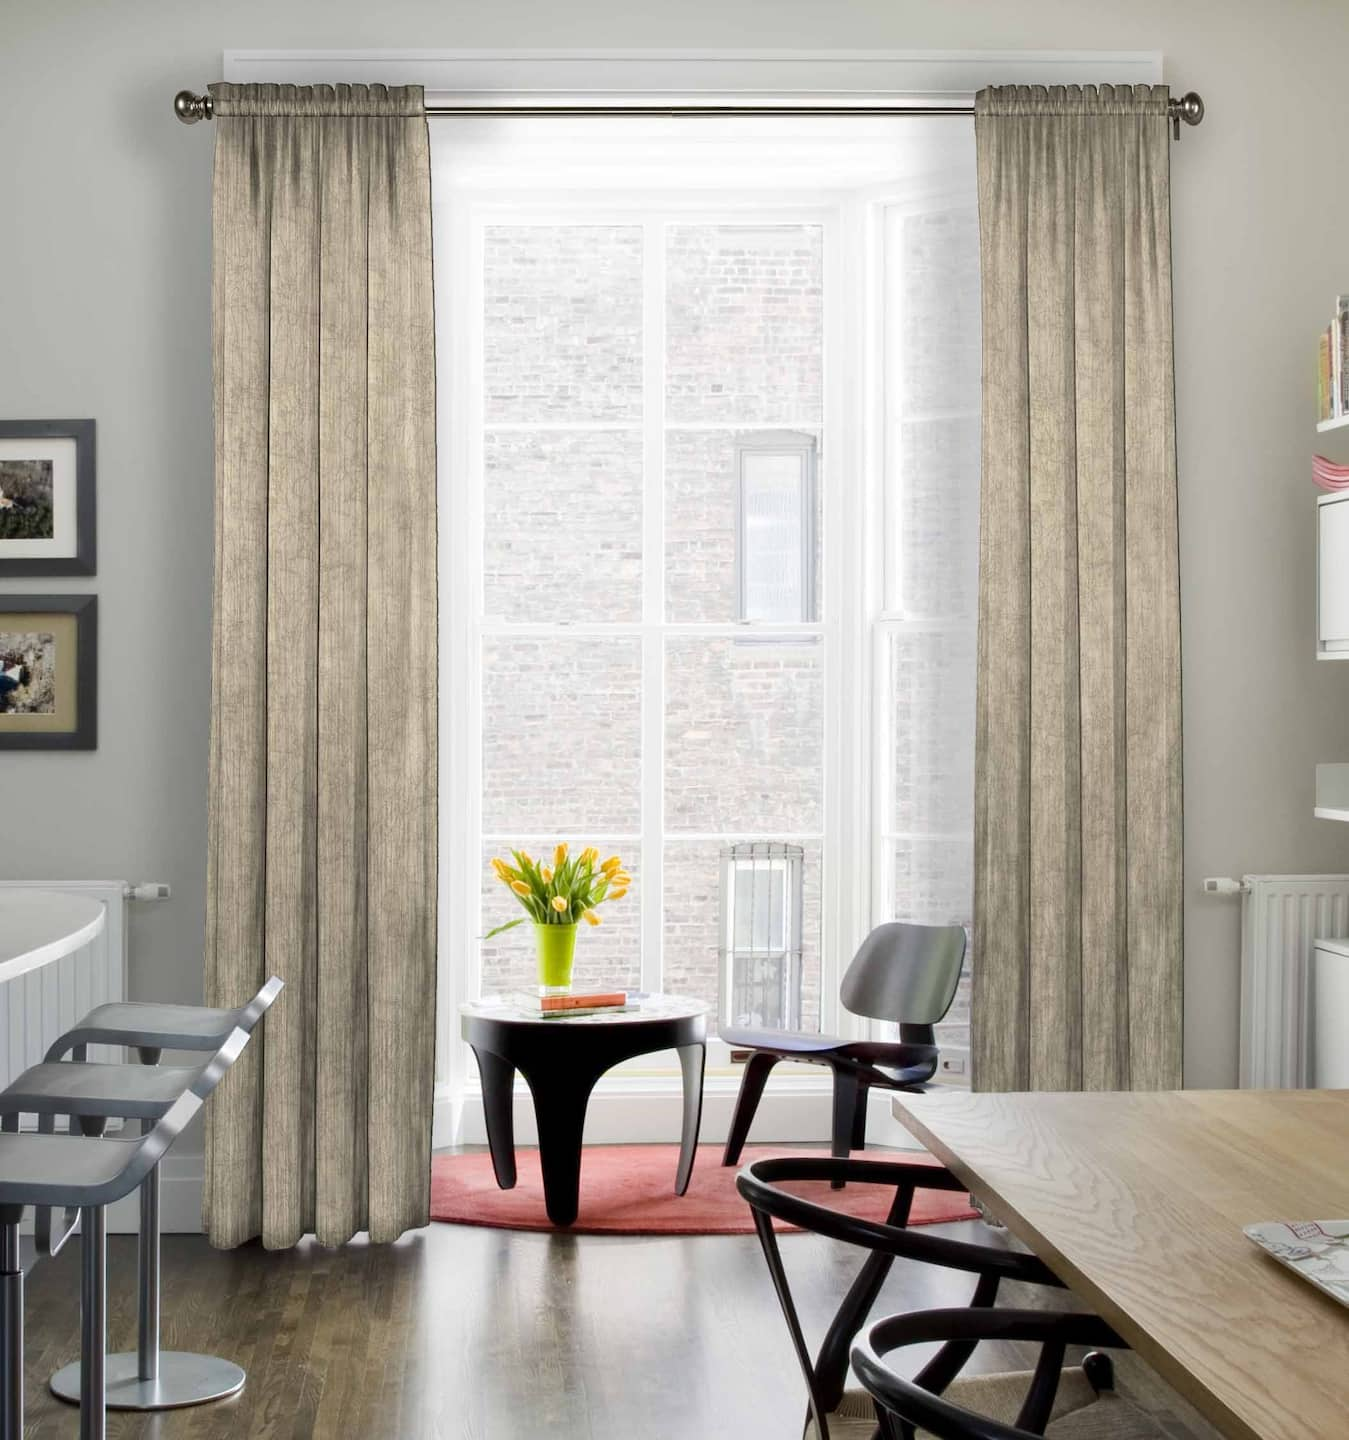 Exceptionnel Modern Dining Room With Off White Curtains In A Subtle Pattern, Framing A  Tall